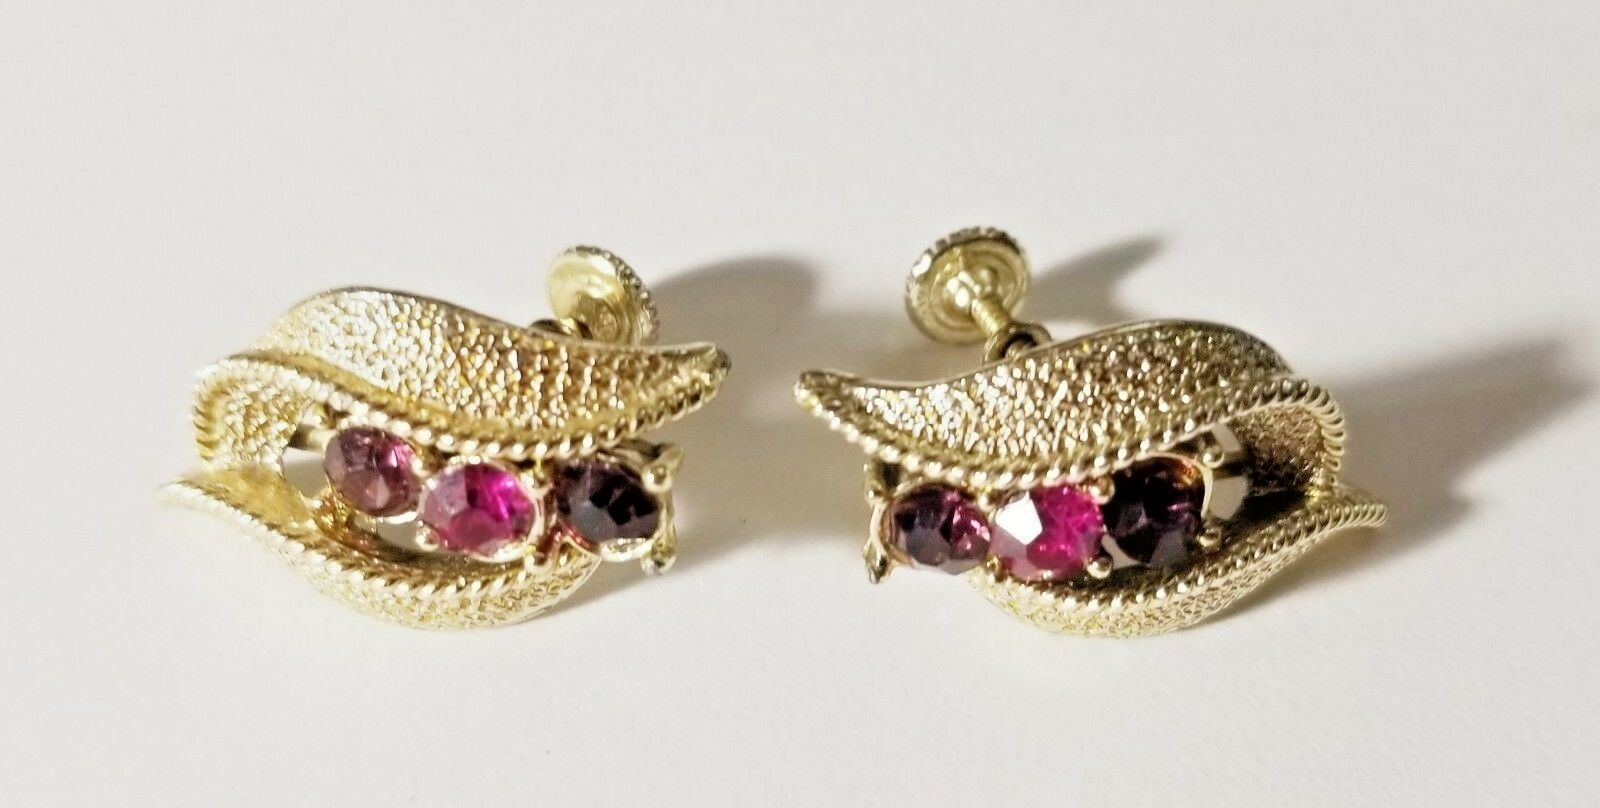 VTG Coro Silver Tone Screw Back Earrings Amethyst Lavender Purple Rhinestones